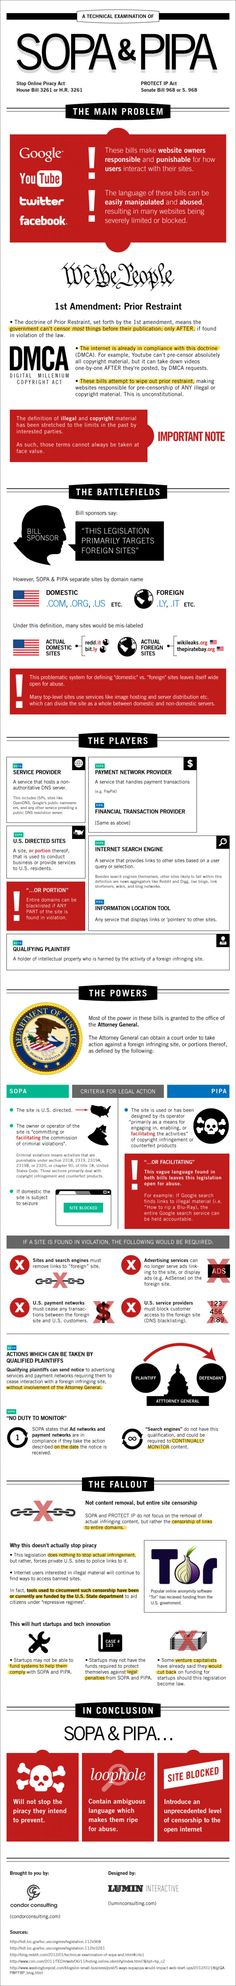 Infographic: Why SOPA/PIPA are harmful    Though the two bills are tabled for now, they may come back in new forms. It's good to know why they're harmful in their current versions.